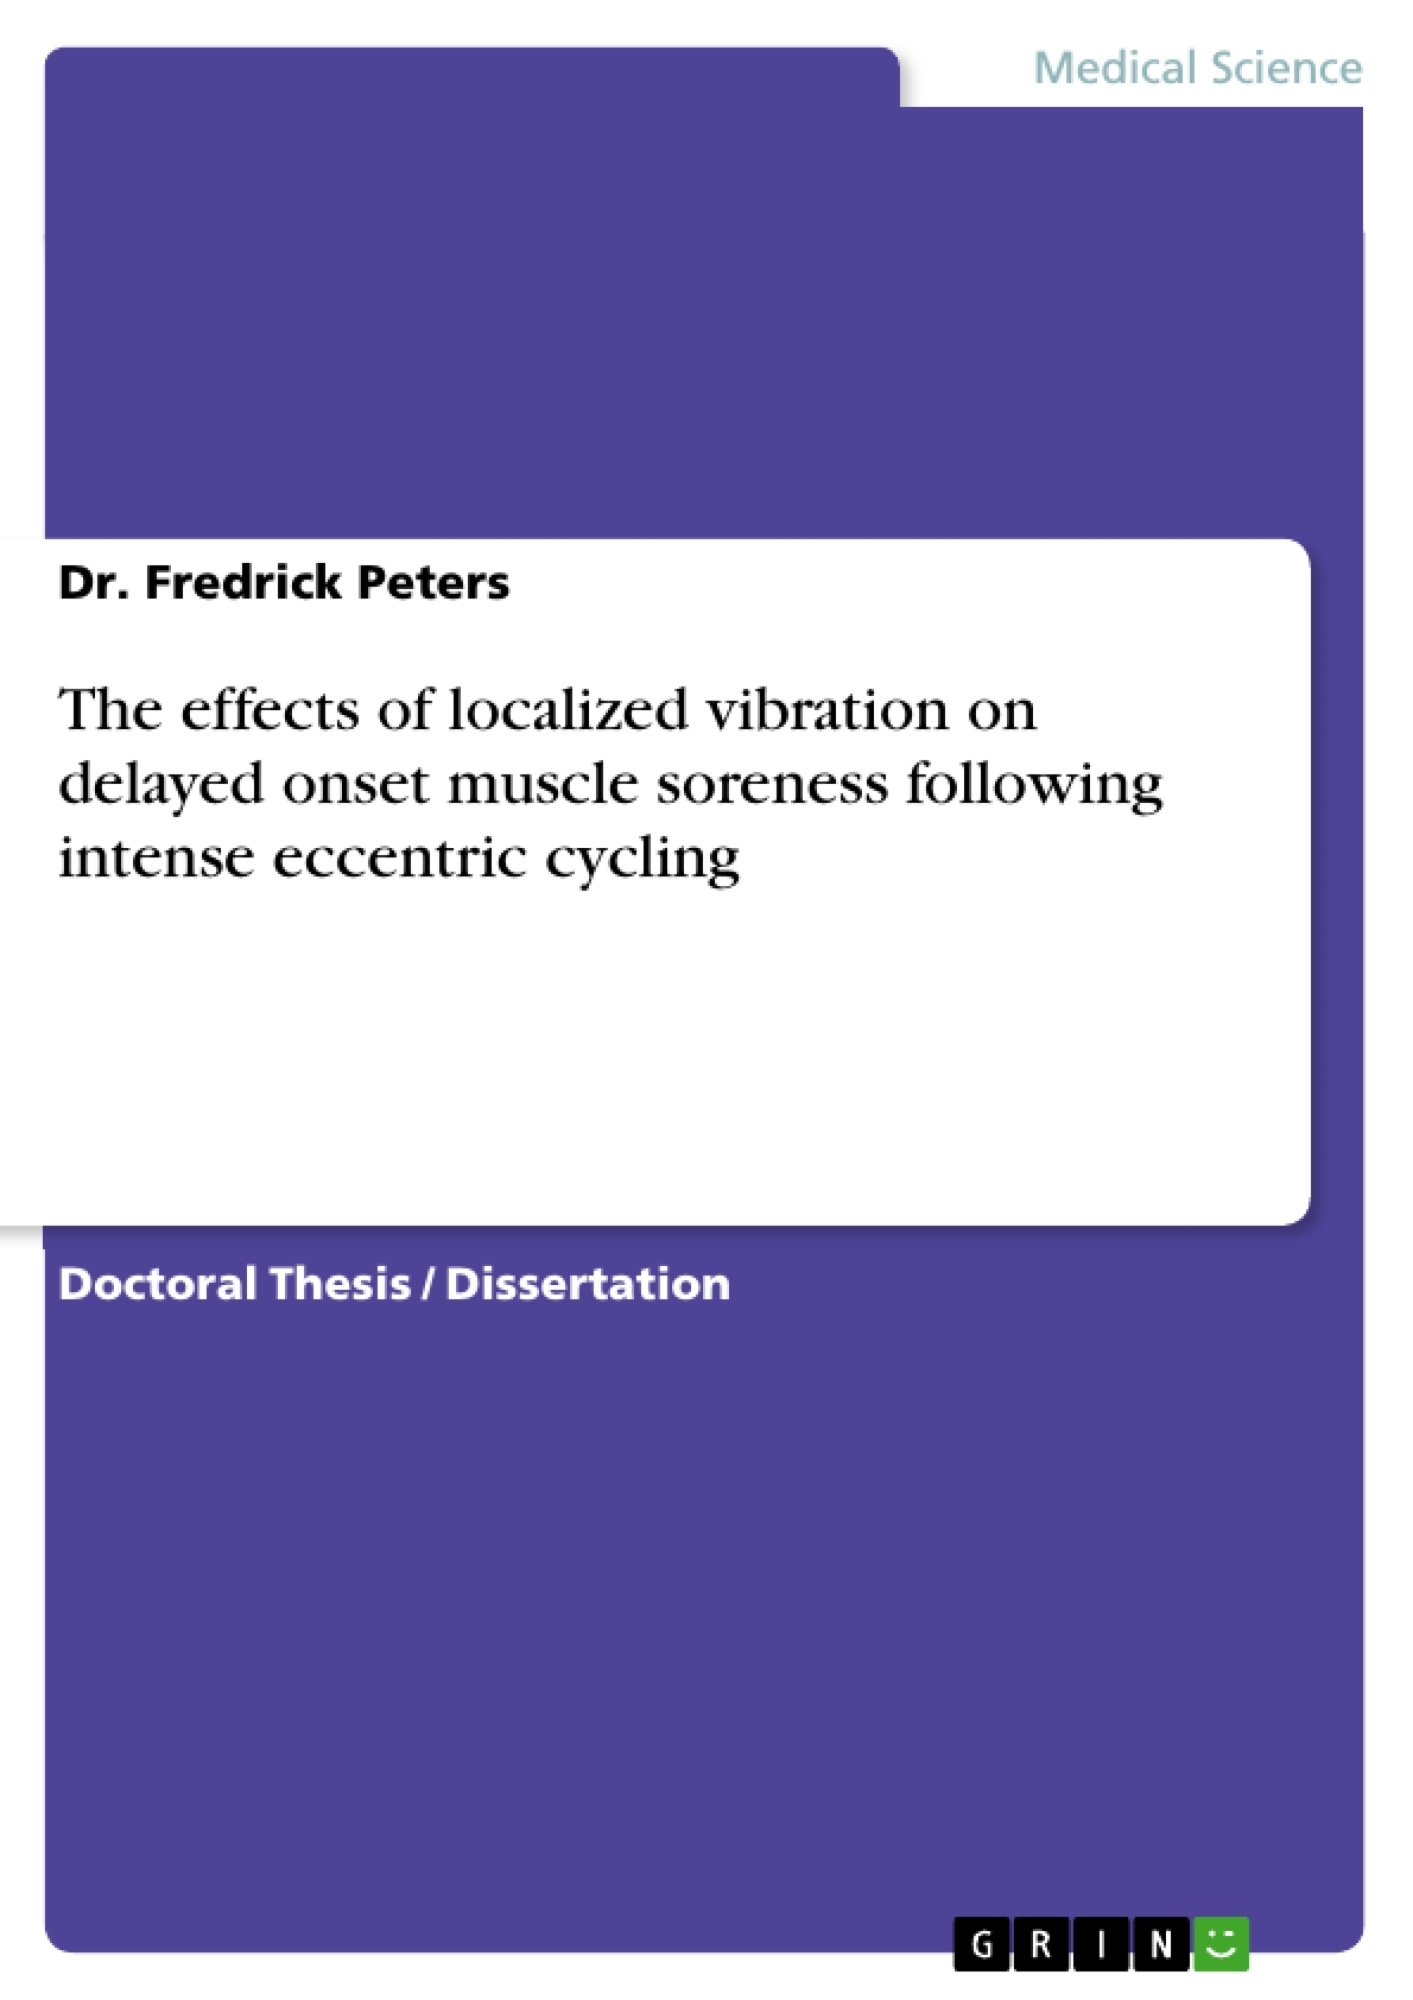 Title: The effects of localized vibration on delayed onset muscle soreness following intense eccentric cycling